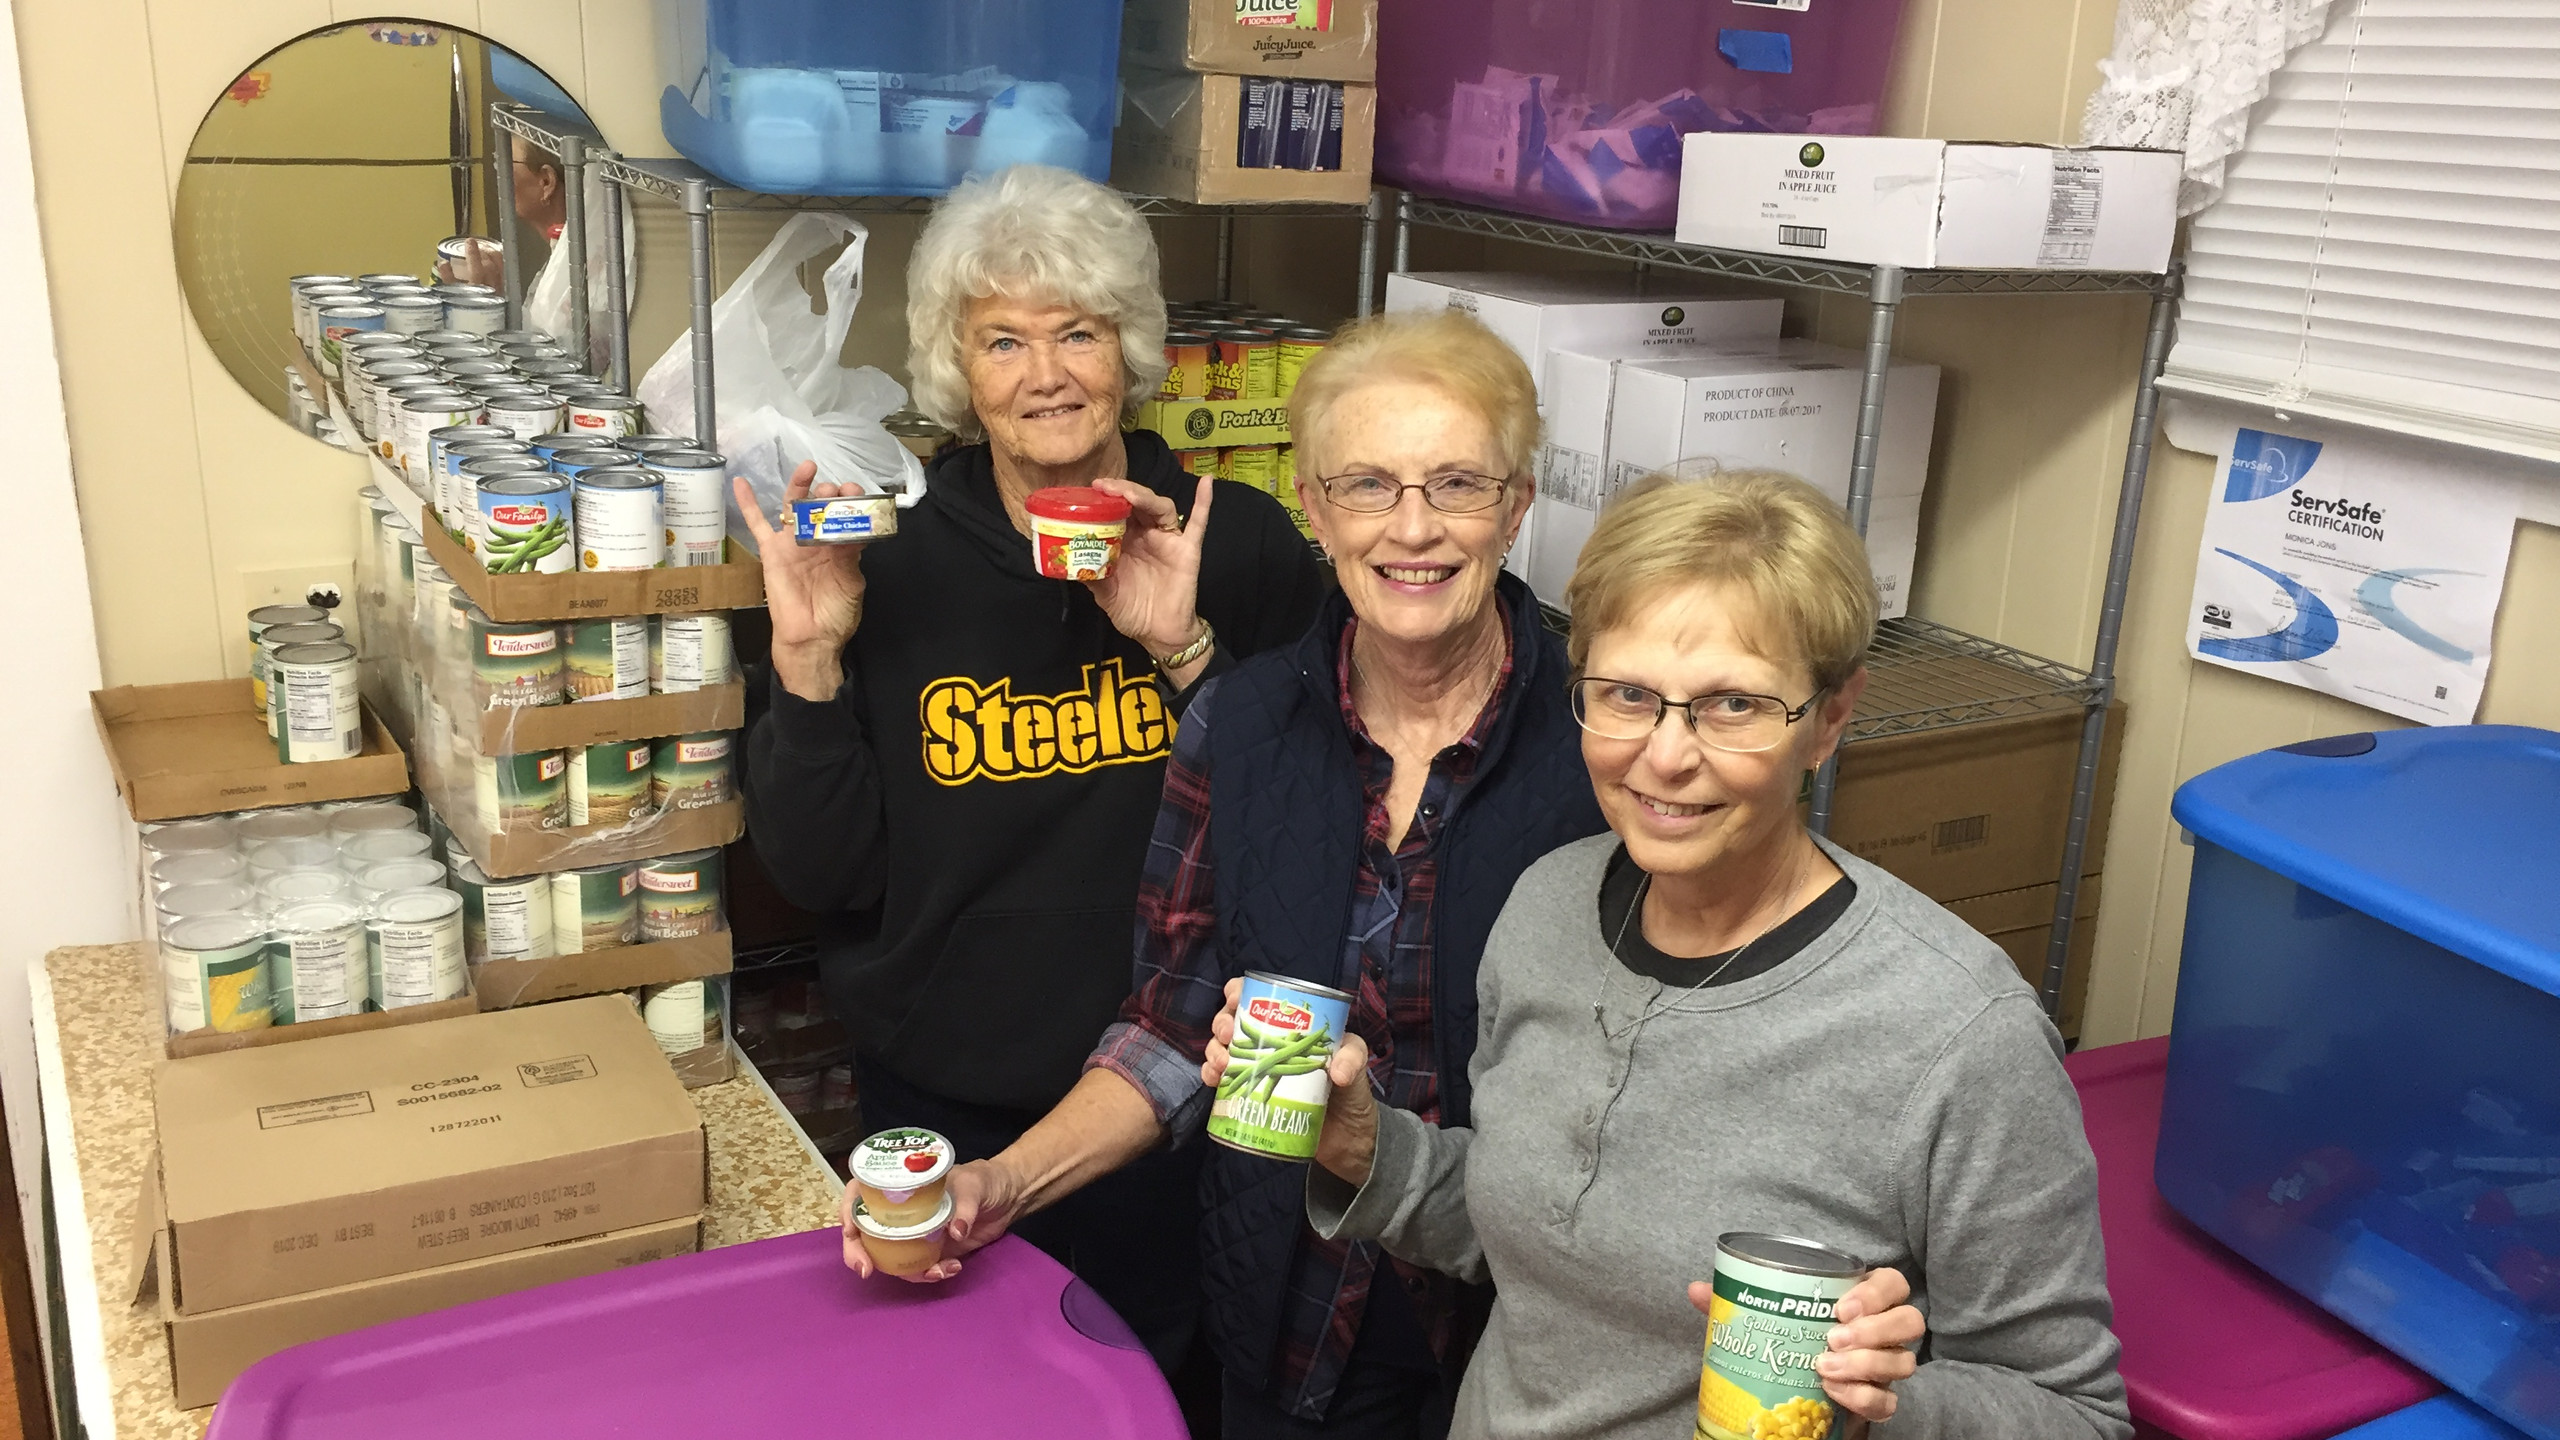 Another successful year for the South Central Backpack Program.   Program coordinators are Dolly Spitzenberger, Jeanne Applebee and Connie Schmitz.